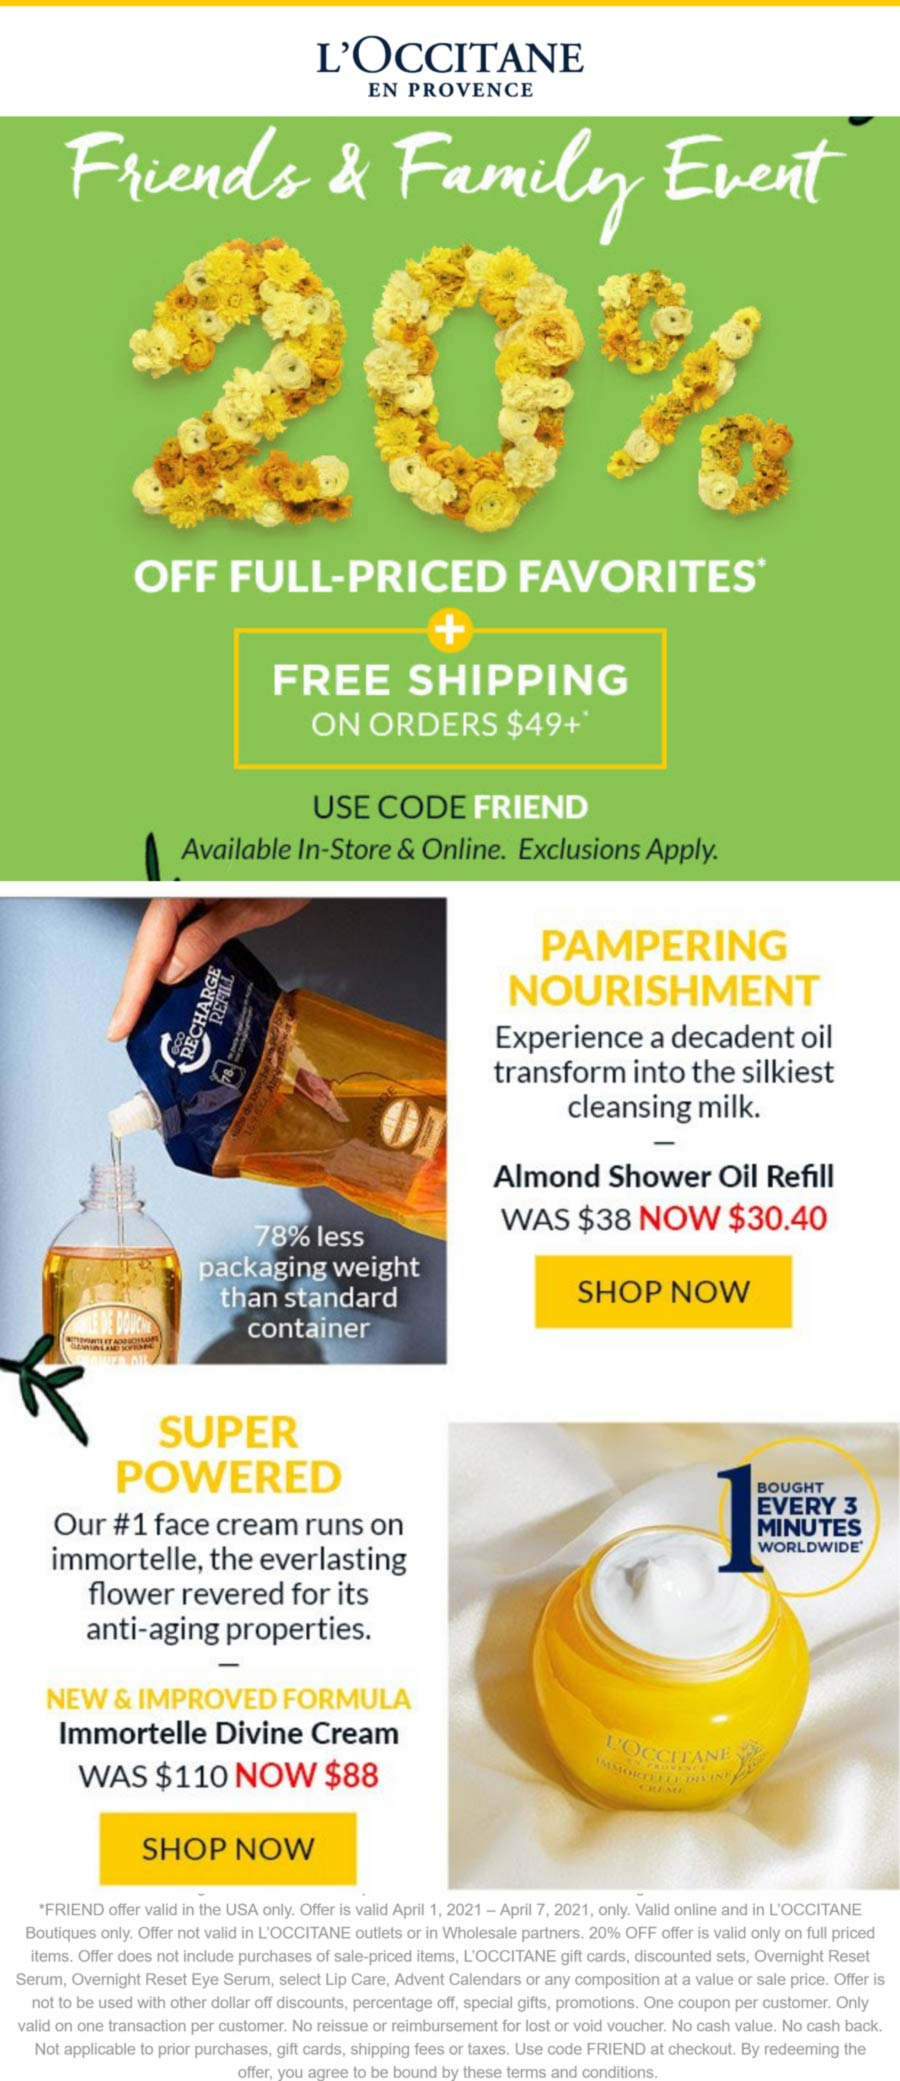 LOccitane coupons & promo code for [May 2021]